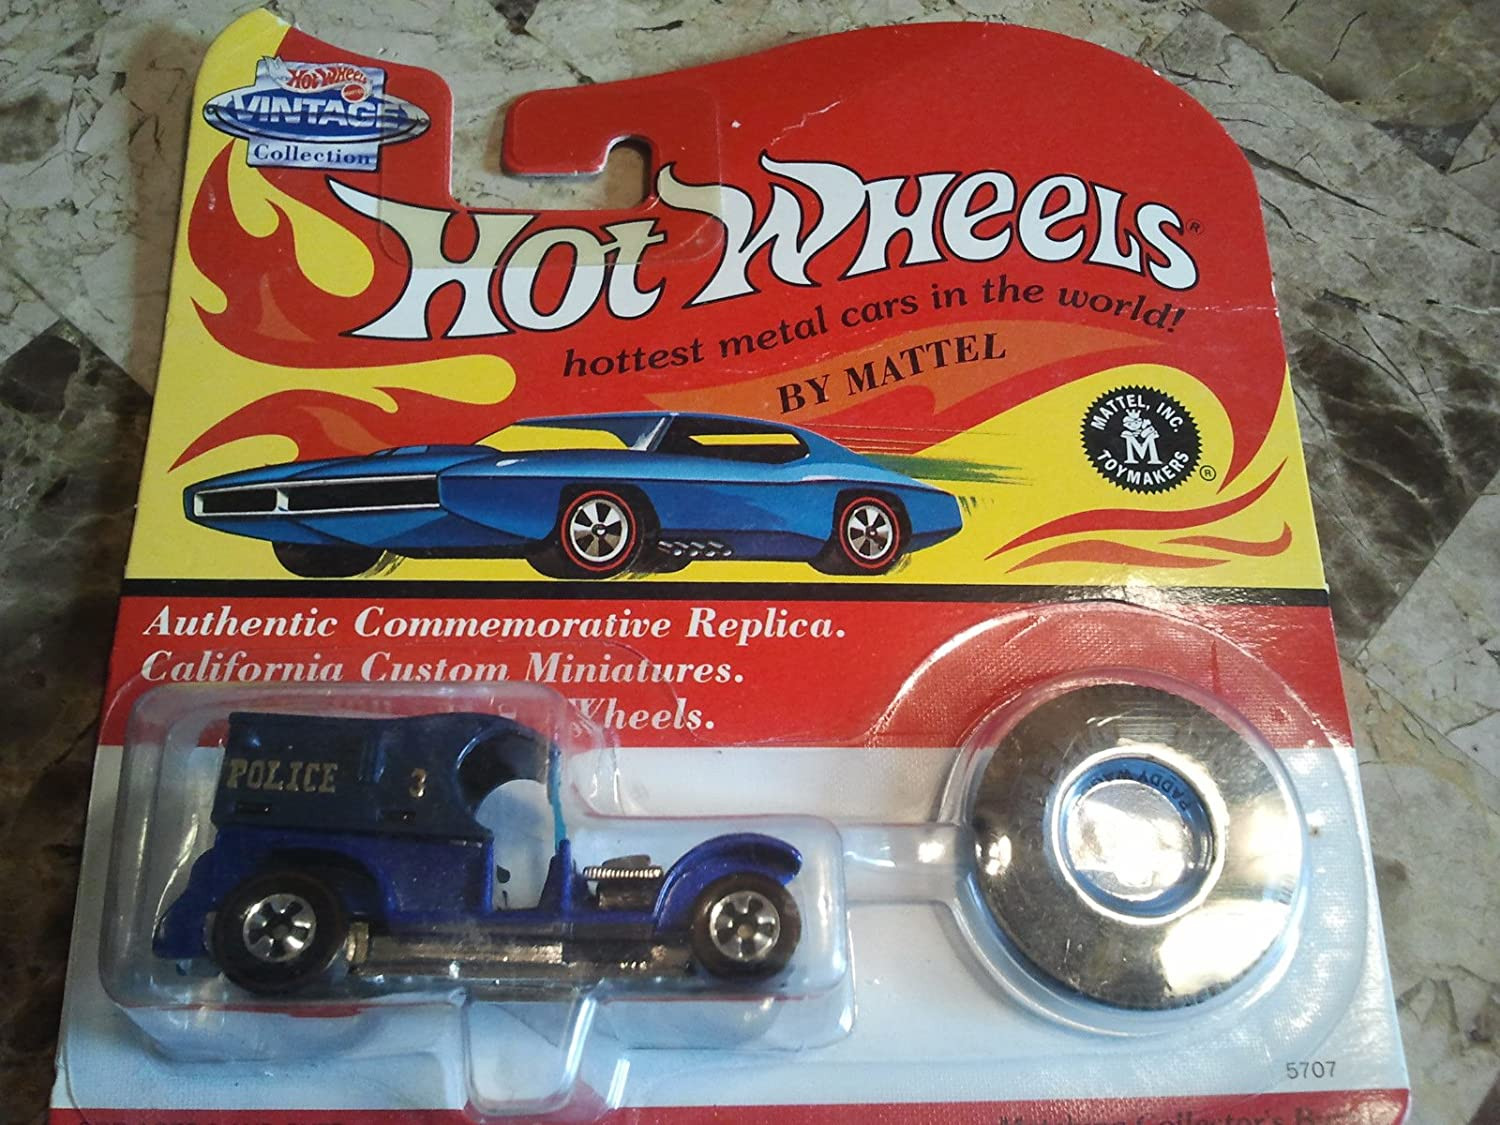 Hot Wtalons - 25th Anniversary Collector's Edition - Paddy Wagon (Couleurs Vary) - Basic Wheel Hubs - Authentic Commemorative Replica w Mat ng Collector's Button